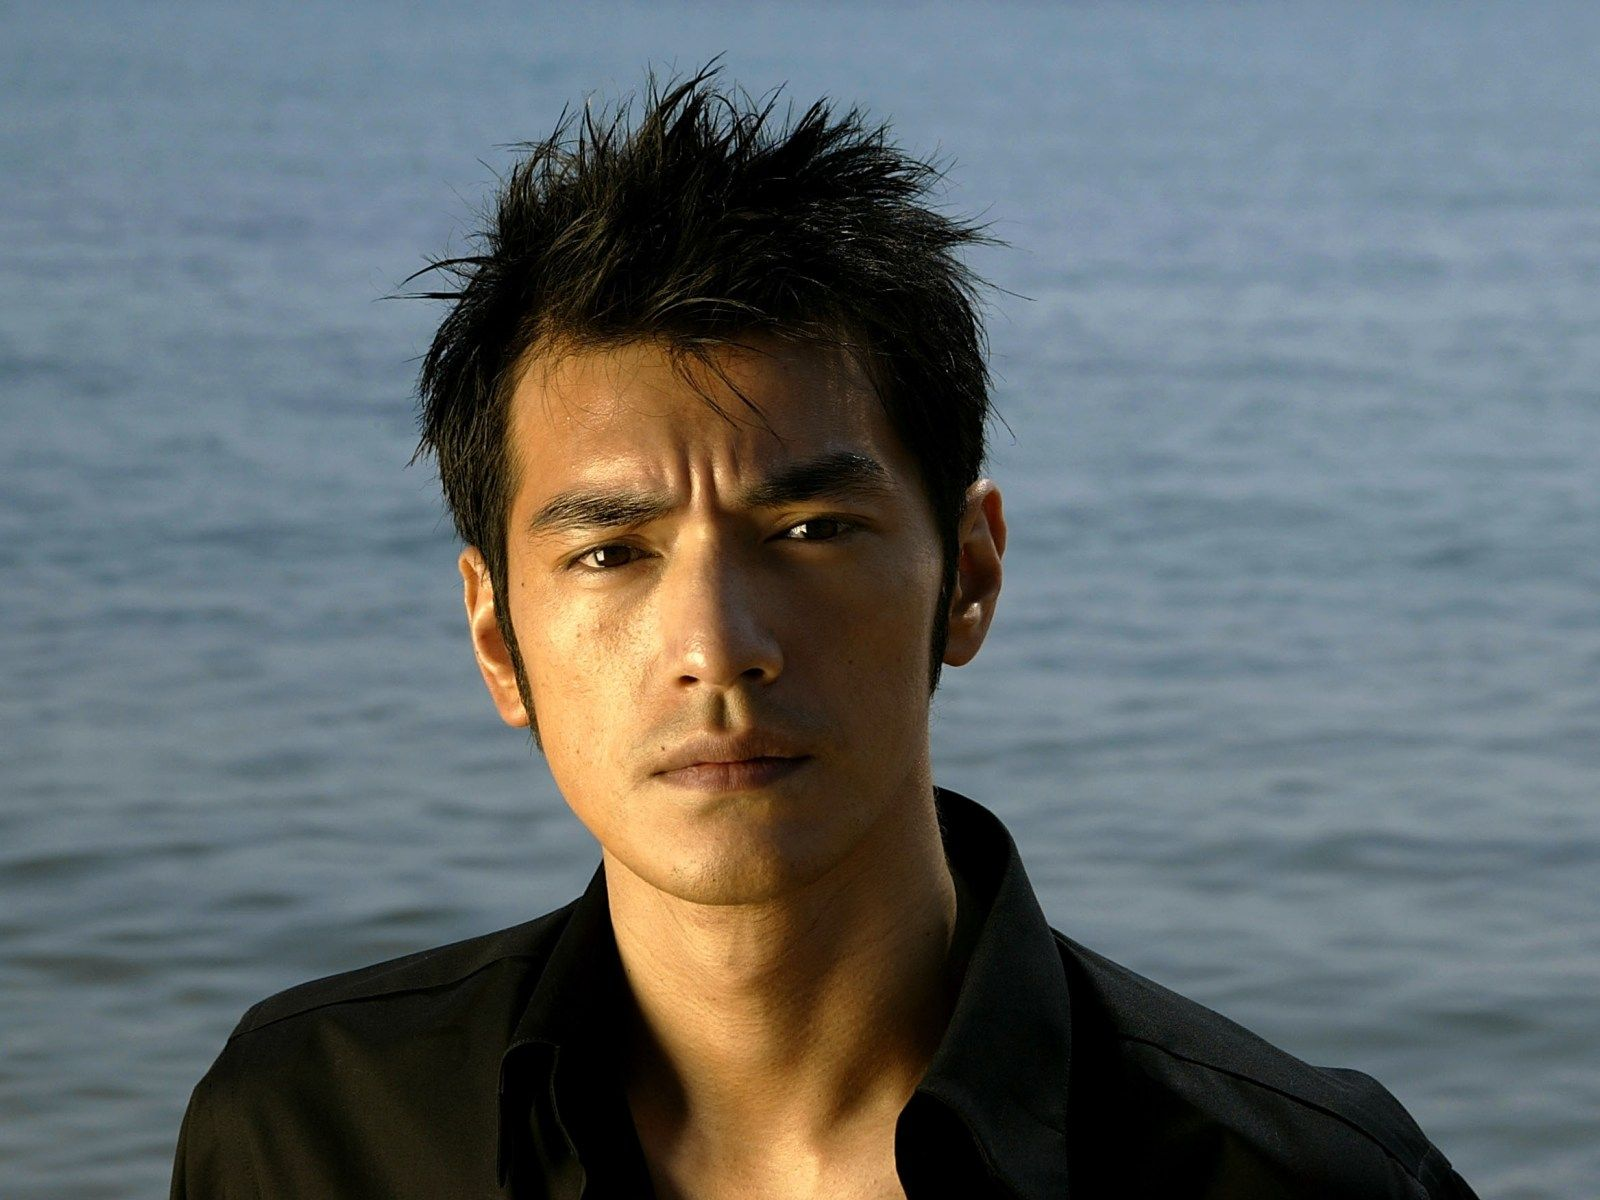 takeshi kaneshiro (japanese and chinese: 金城 武, born october 11